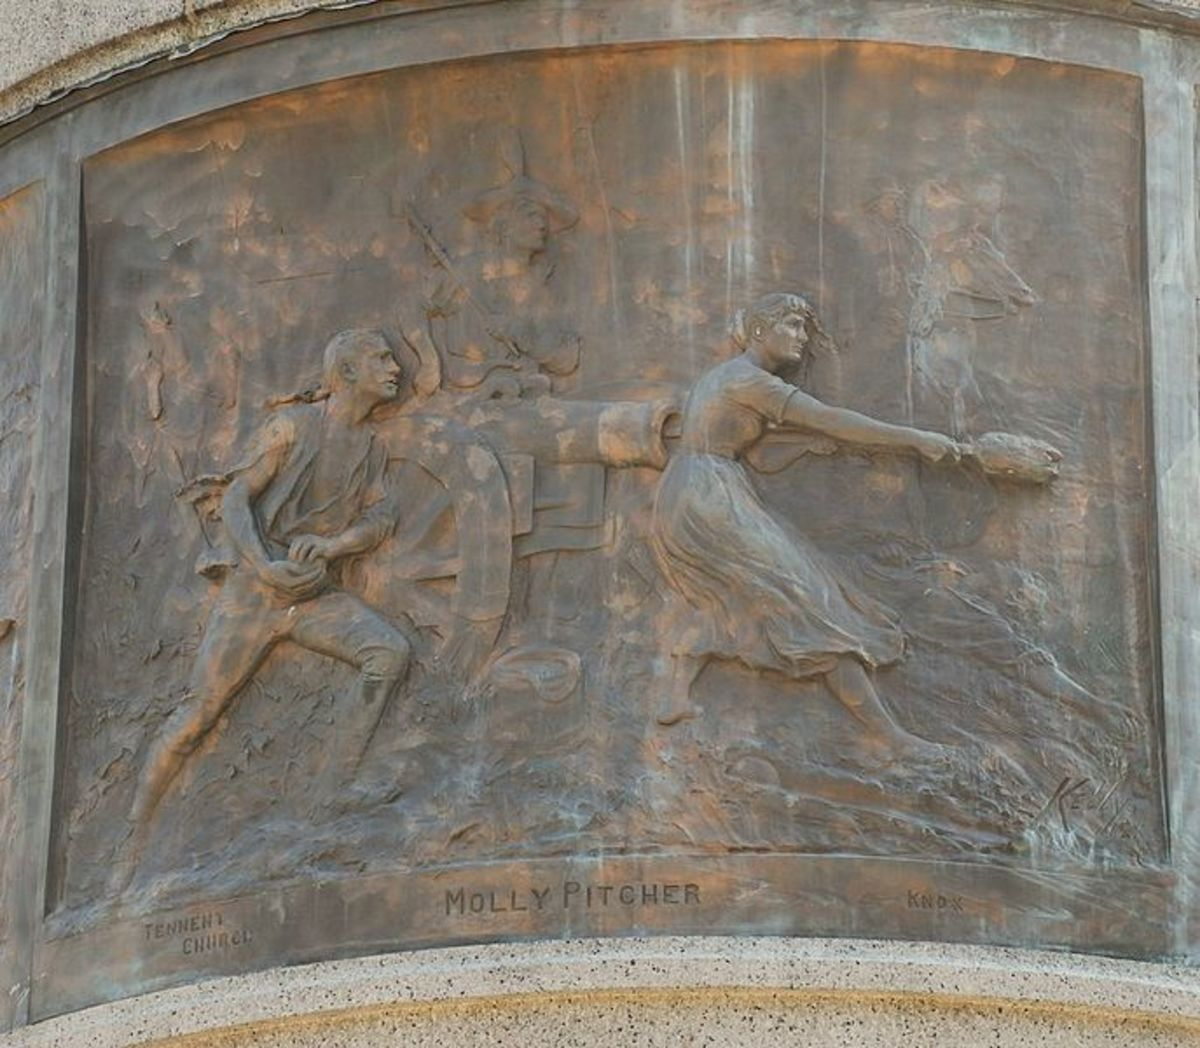 Engraving on the Molly Pitcher monument, by James E. Kelly (artist) (1884), on base of Monmouth Battle Monument, in front of   courthouse in Freehold, NJ.